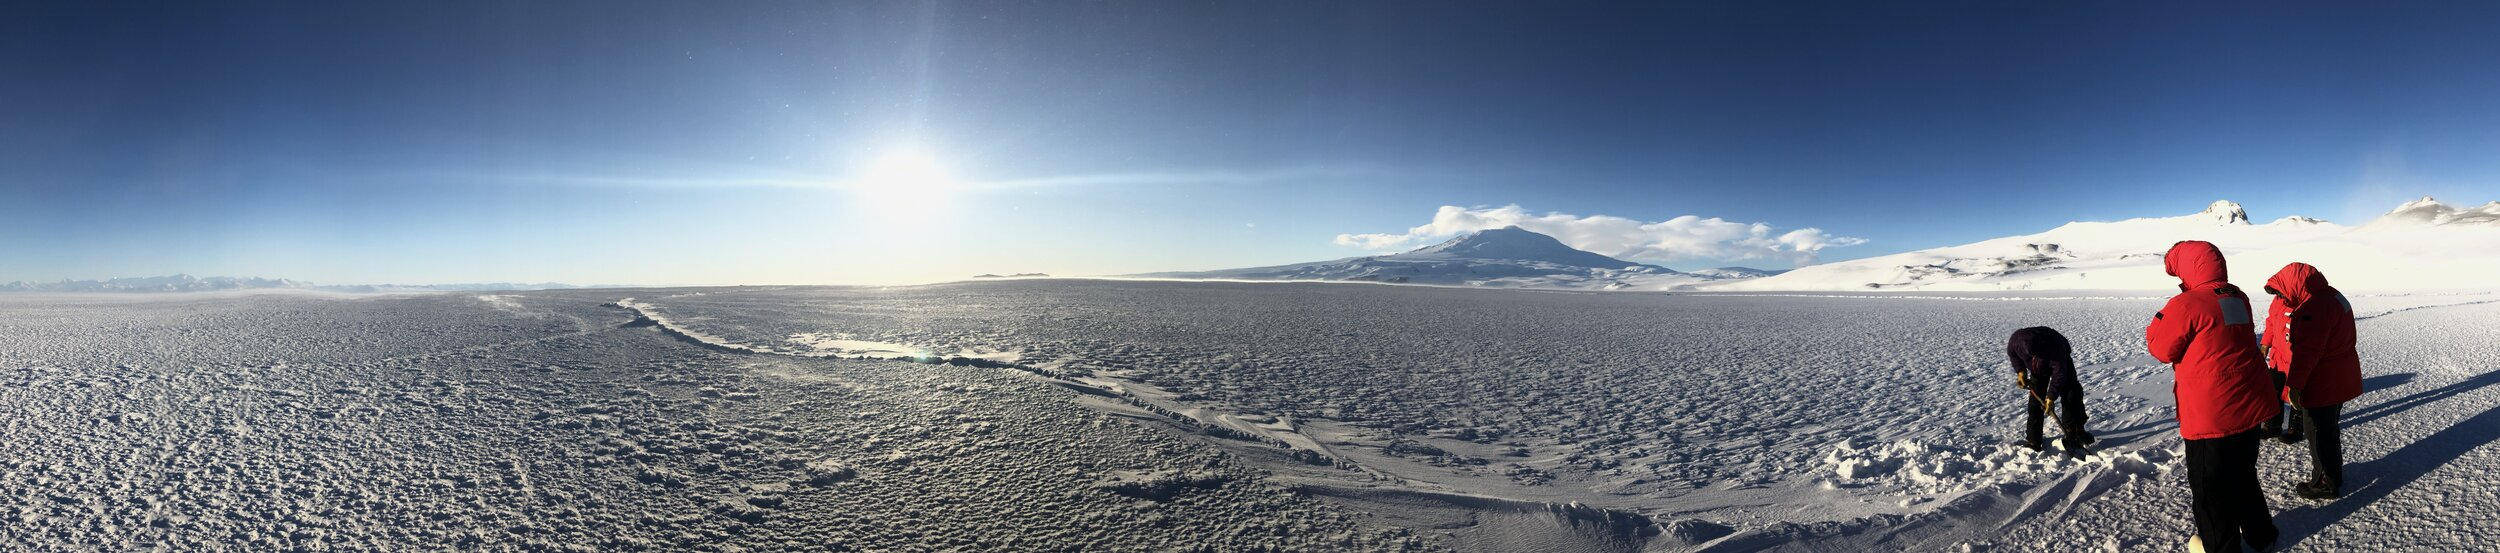 sea ice training for the new team members!  Mt. Erebus, the southernmost active volcano in the world, looms in the distance